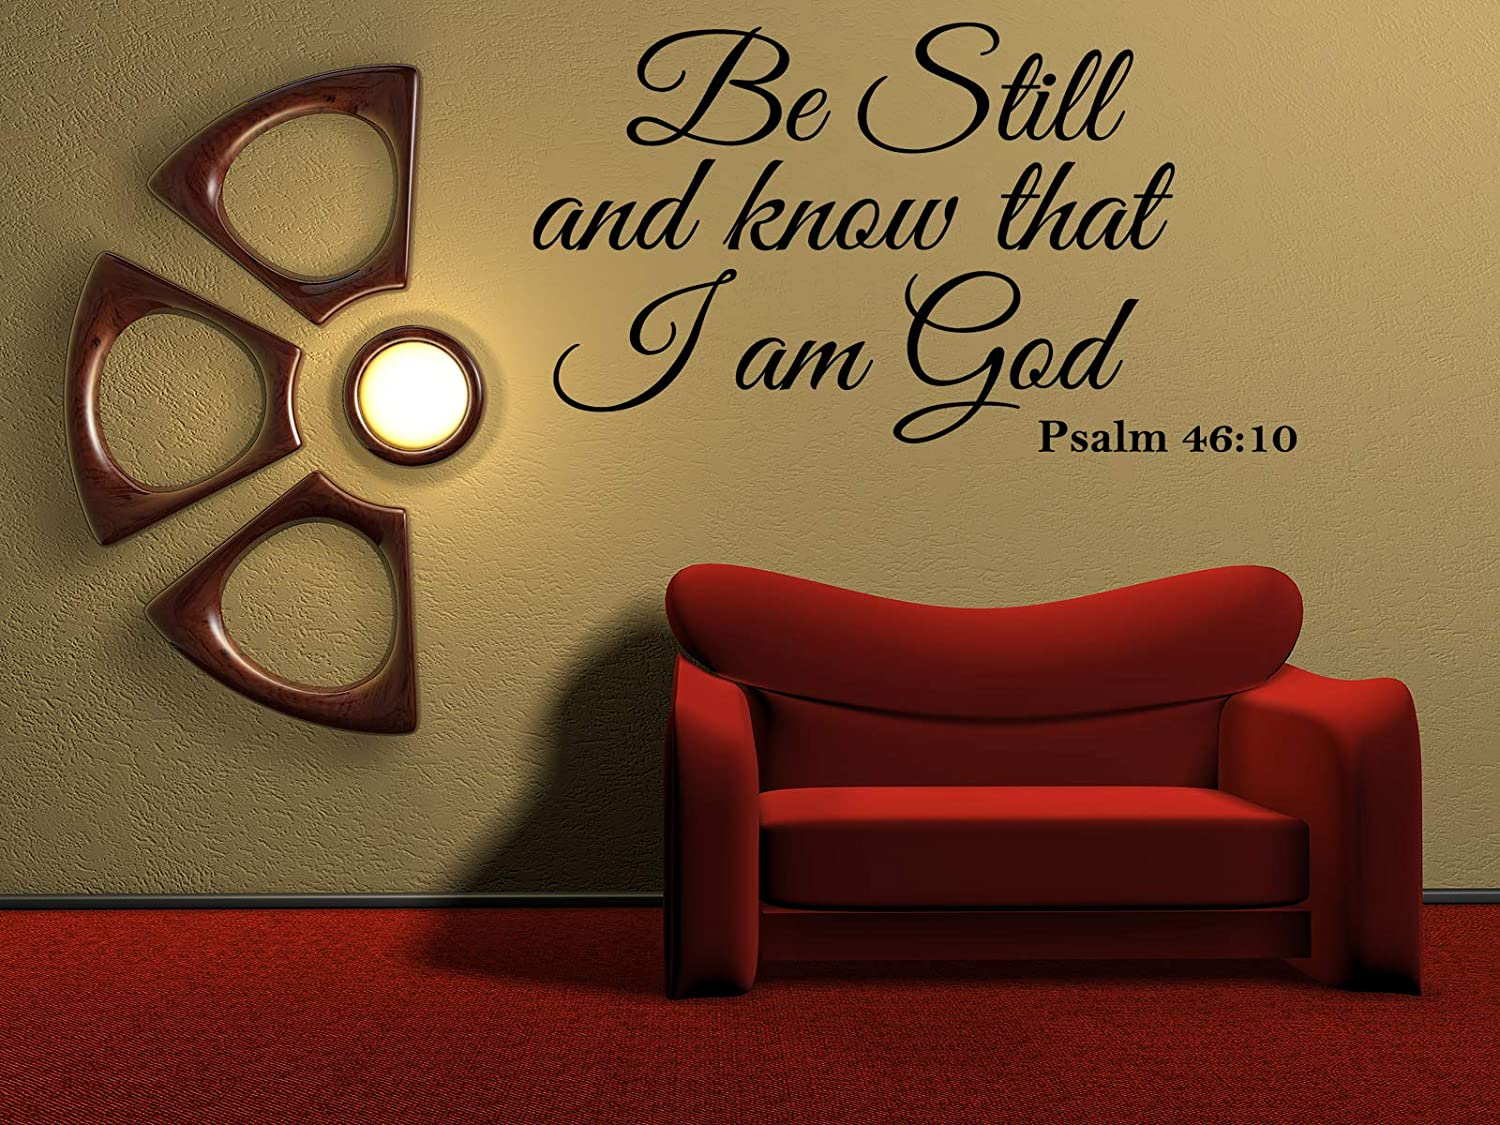 Vinyl Decal Be Still And Know That I Am God Psalm 46:10 Vinyl Wall Religious Home Decor Quote